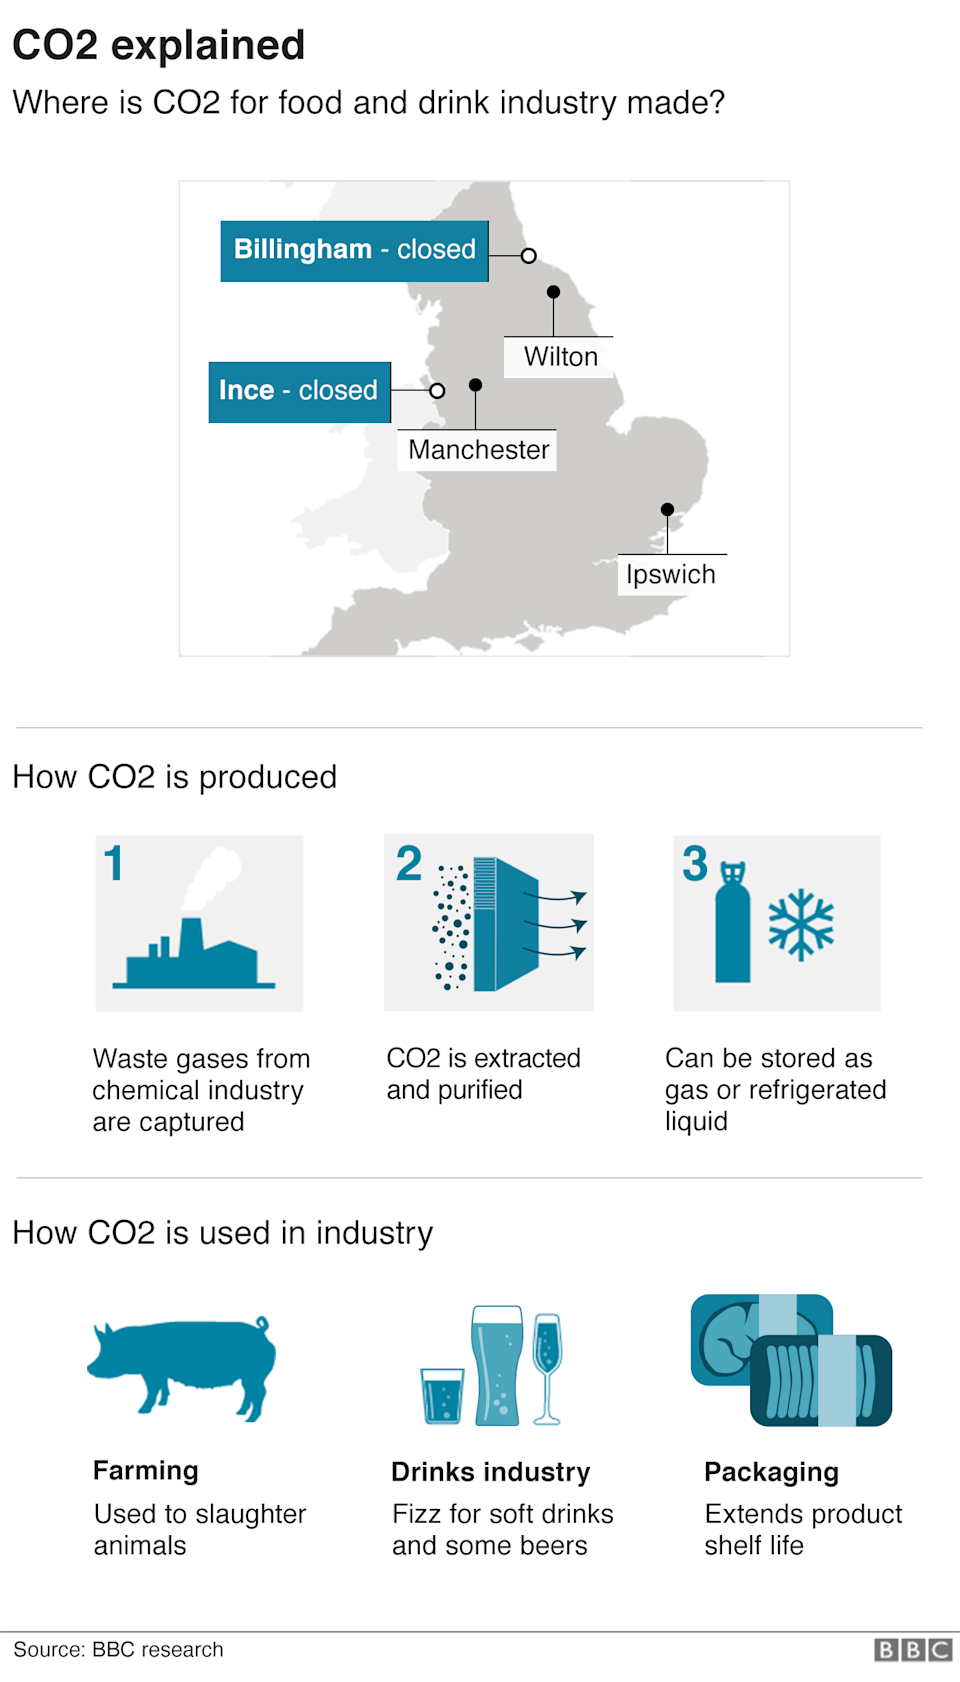 Graphic showing where CO2 is produced in the UK and how it is used in the food industry.